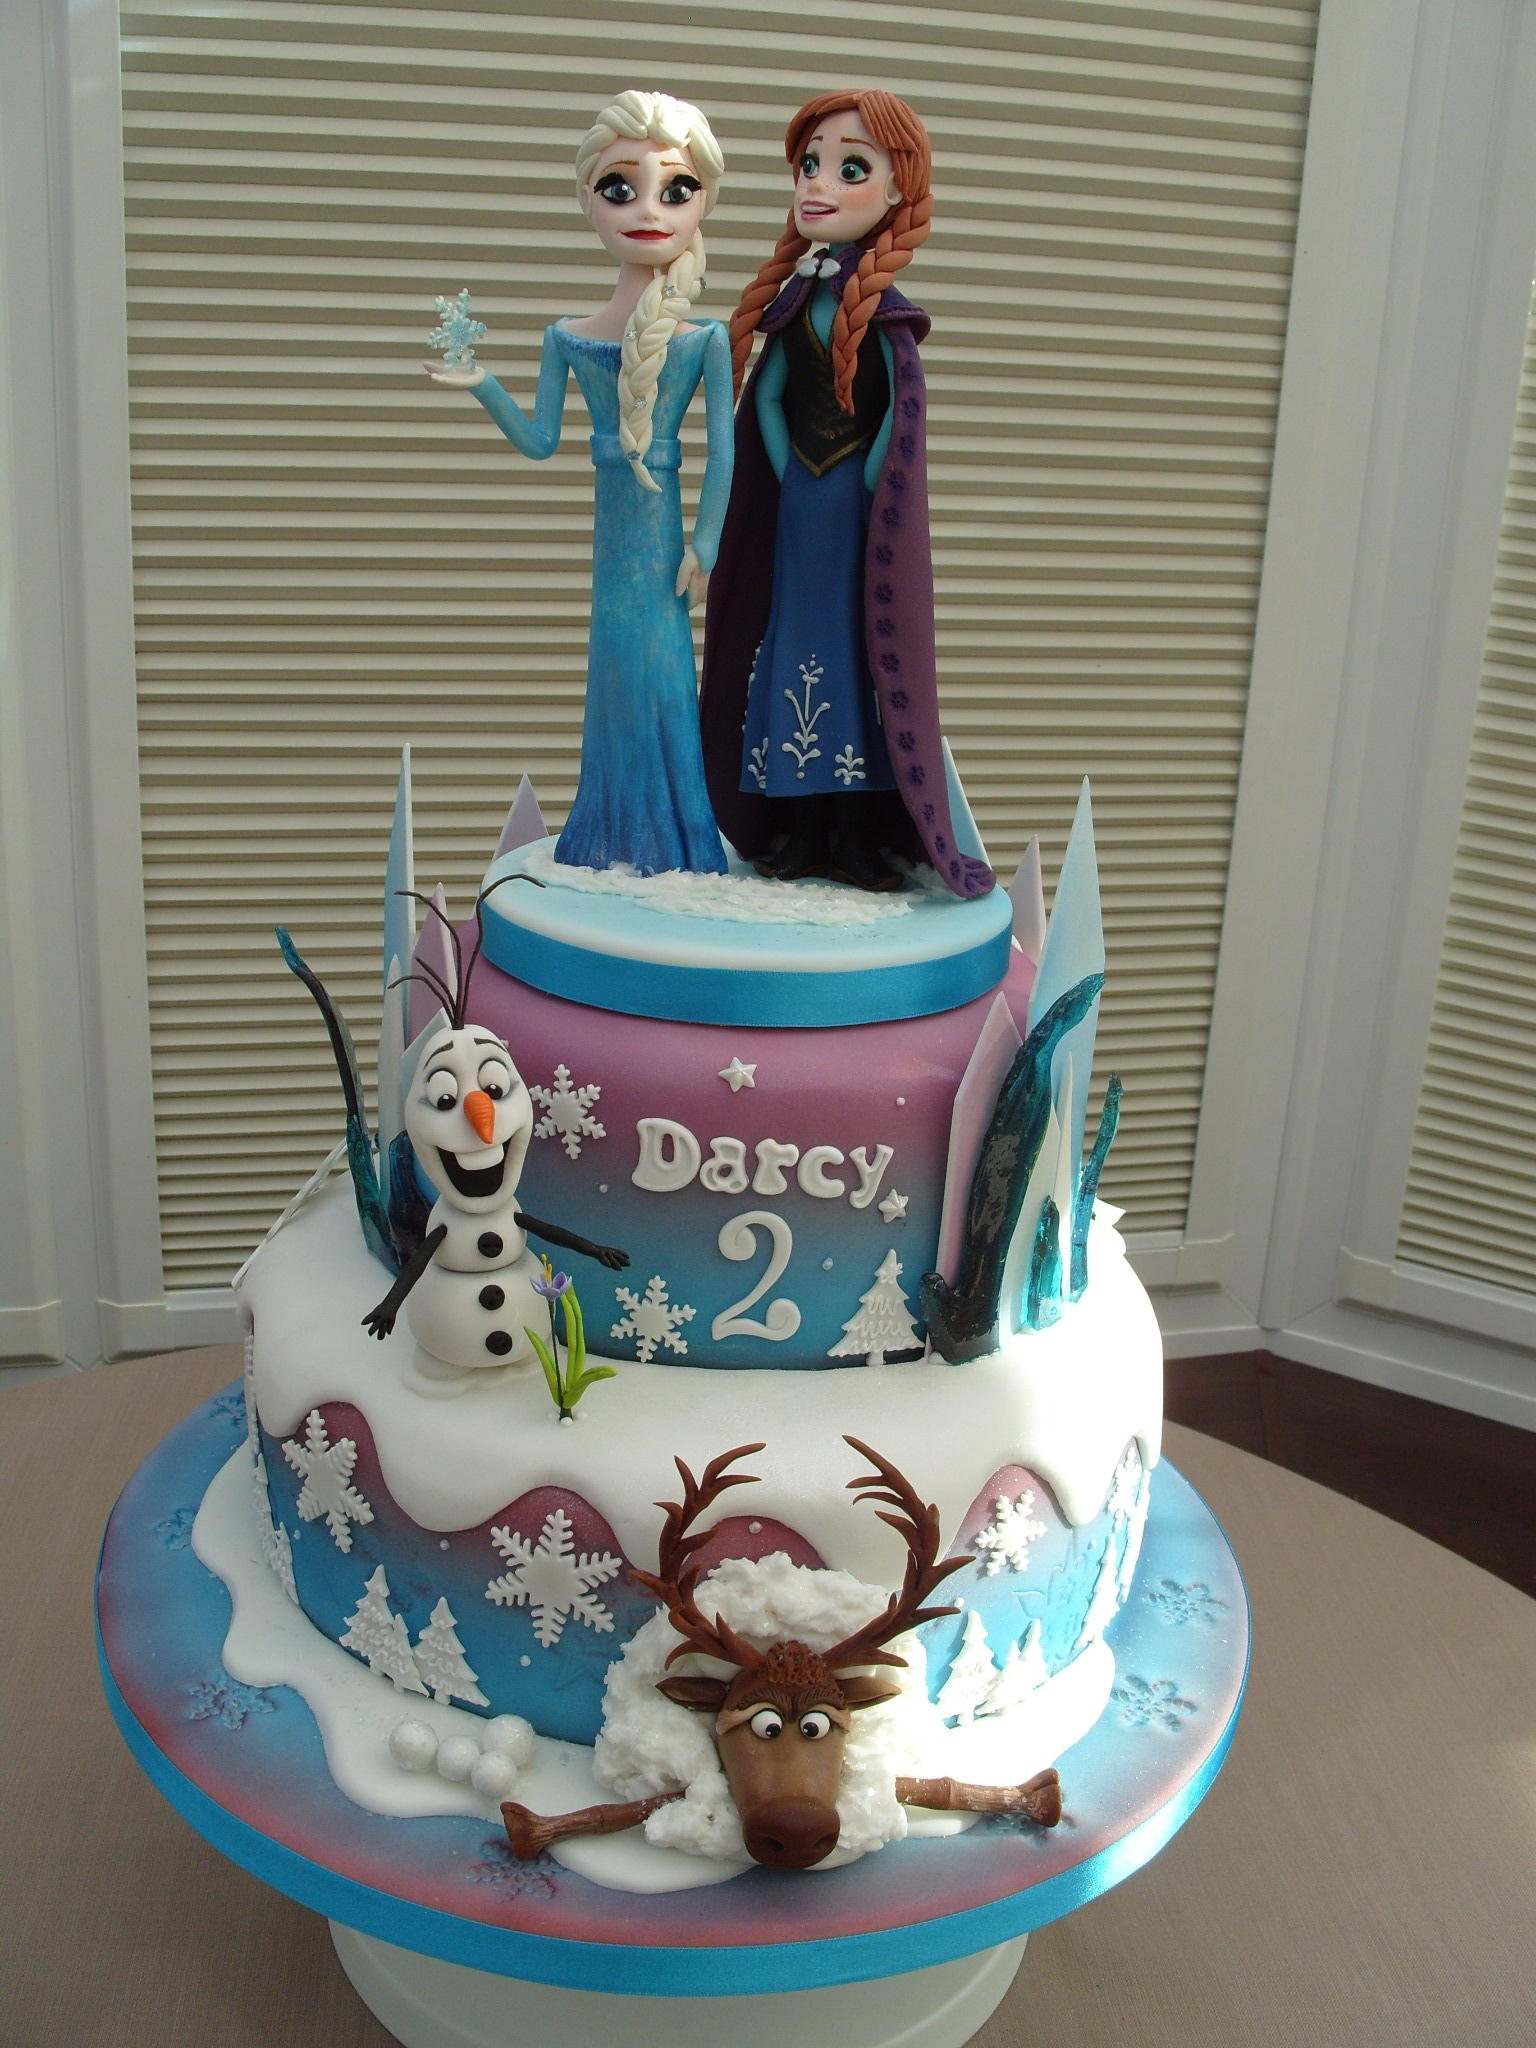 Disneys Frozen Cake Choc Swirl And Strawberry Swirl Madeira Cake